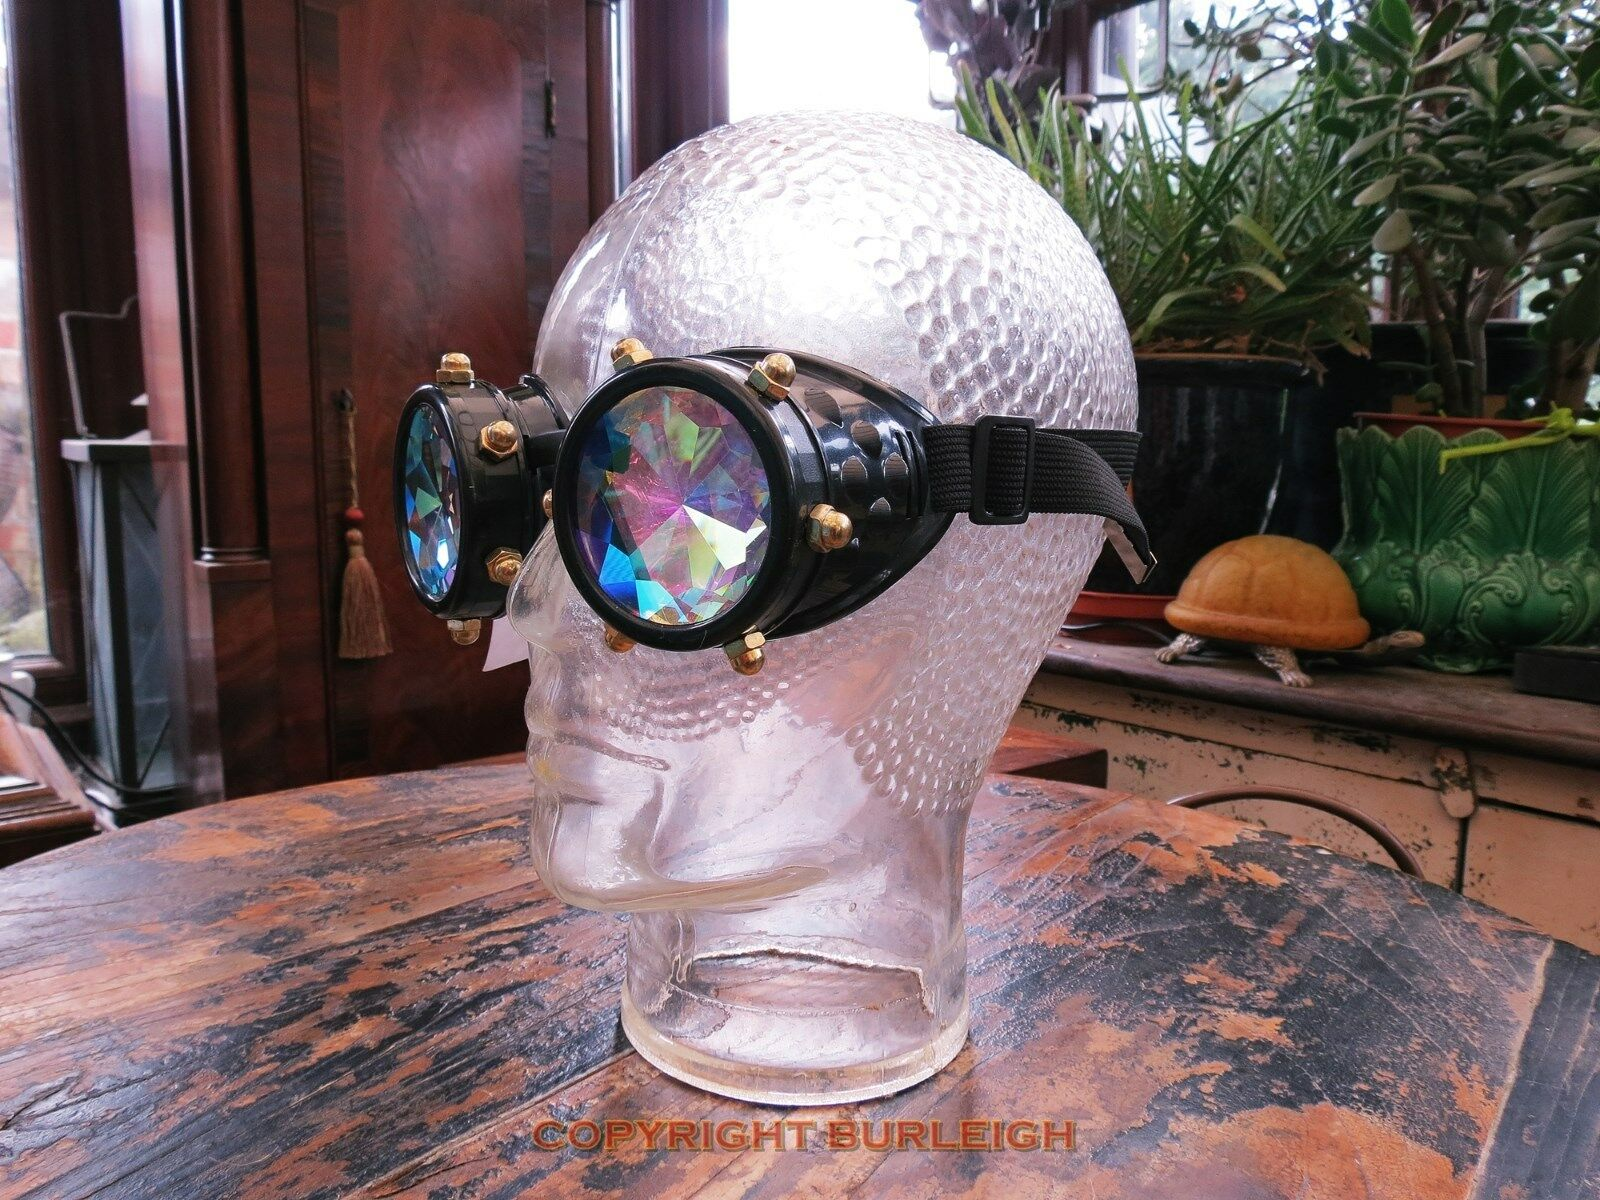 A PAIR OF VINTAGE STYLE STEAMPUNK PRISM GOGGLES. GOOD QUALITY, WELL MADE